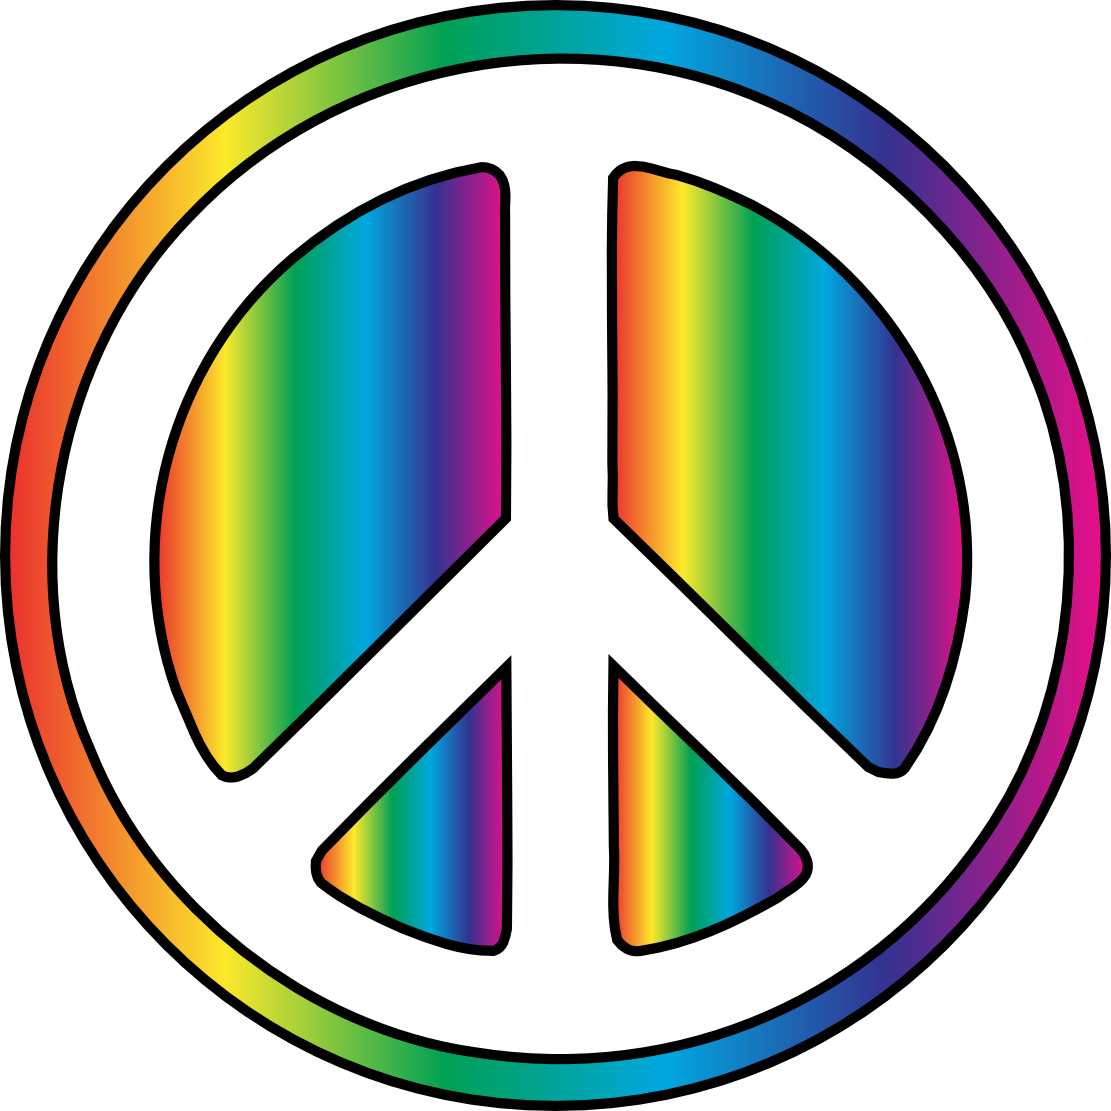 Peace clipart non violence. Free hippie cliparts download